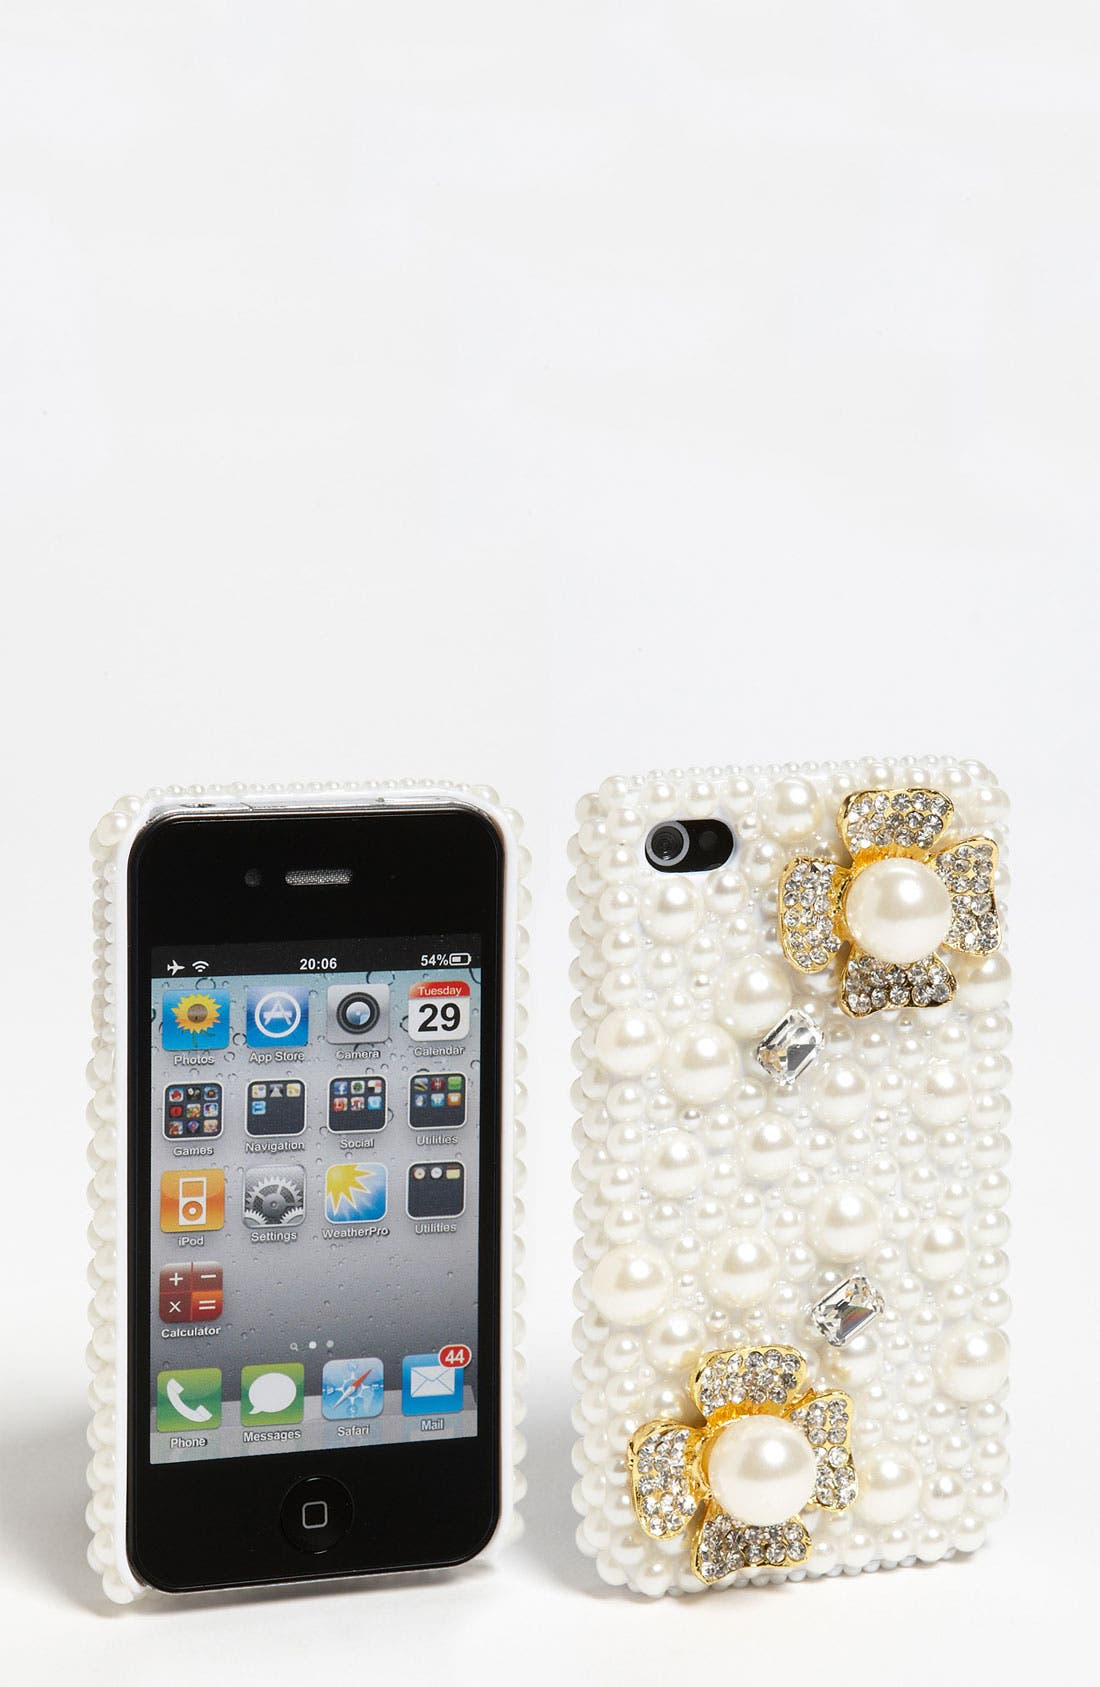 Alternate Image 1 Selected - Natasha Couture 'Flower and Pearl' iPhone 4 & 4S Case